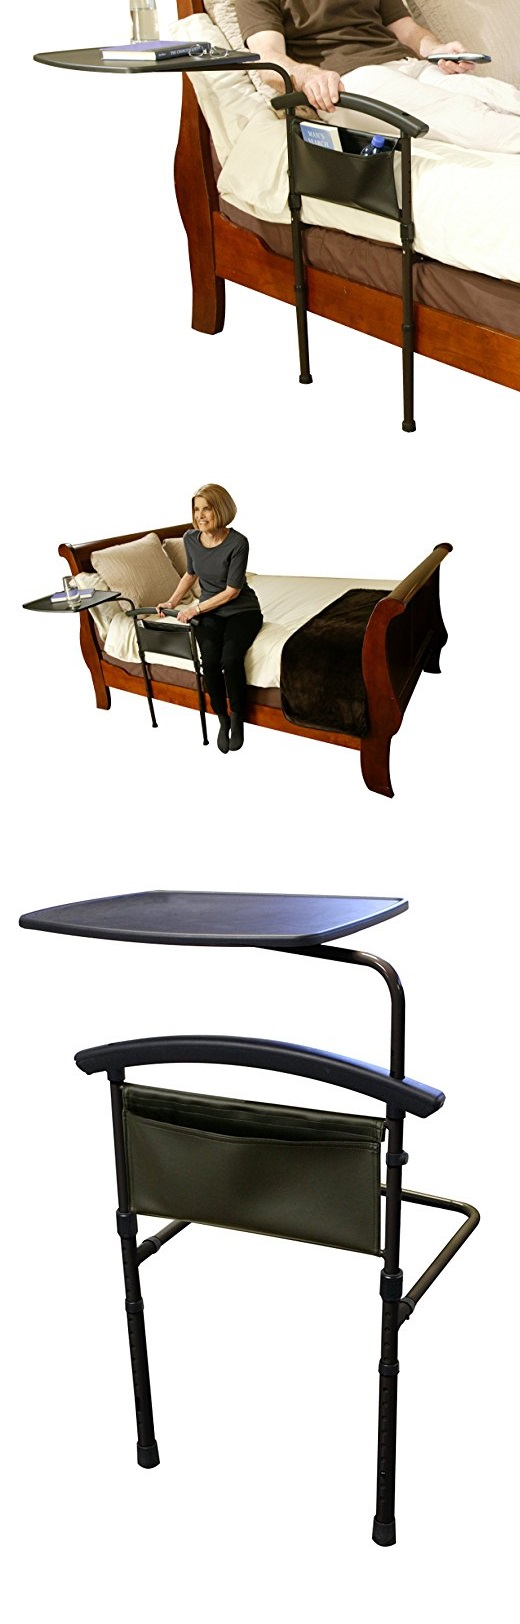 2 in 1 Overbed Table and Home Bed Rail Stand gadgets